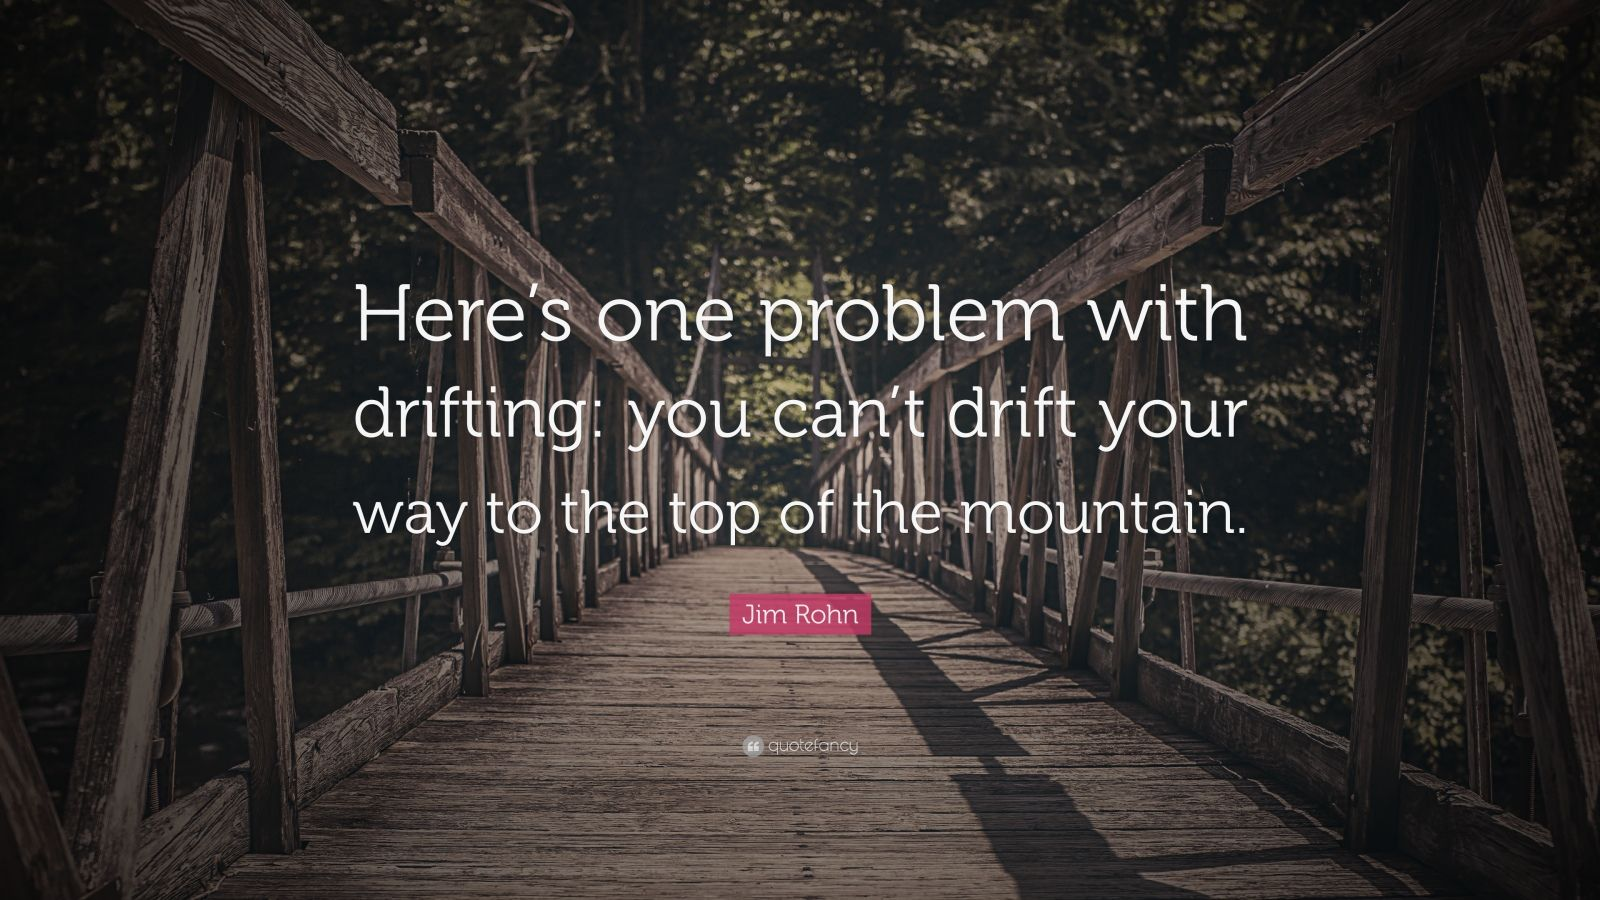 """Jim Rohn Quote: """"Here's one problem with drifting: you can't drift your way to the top of the mountain."""""""